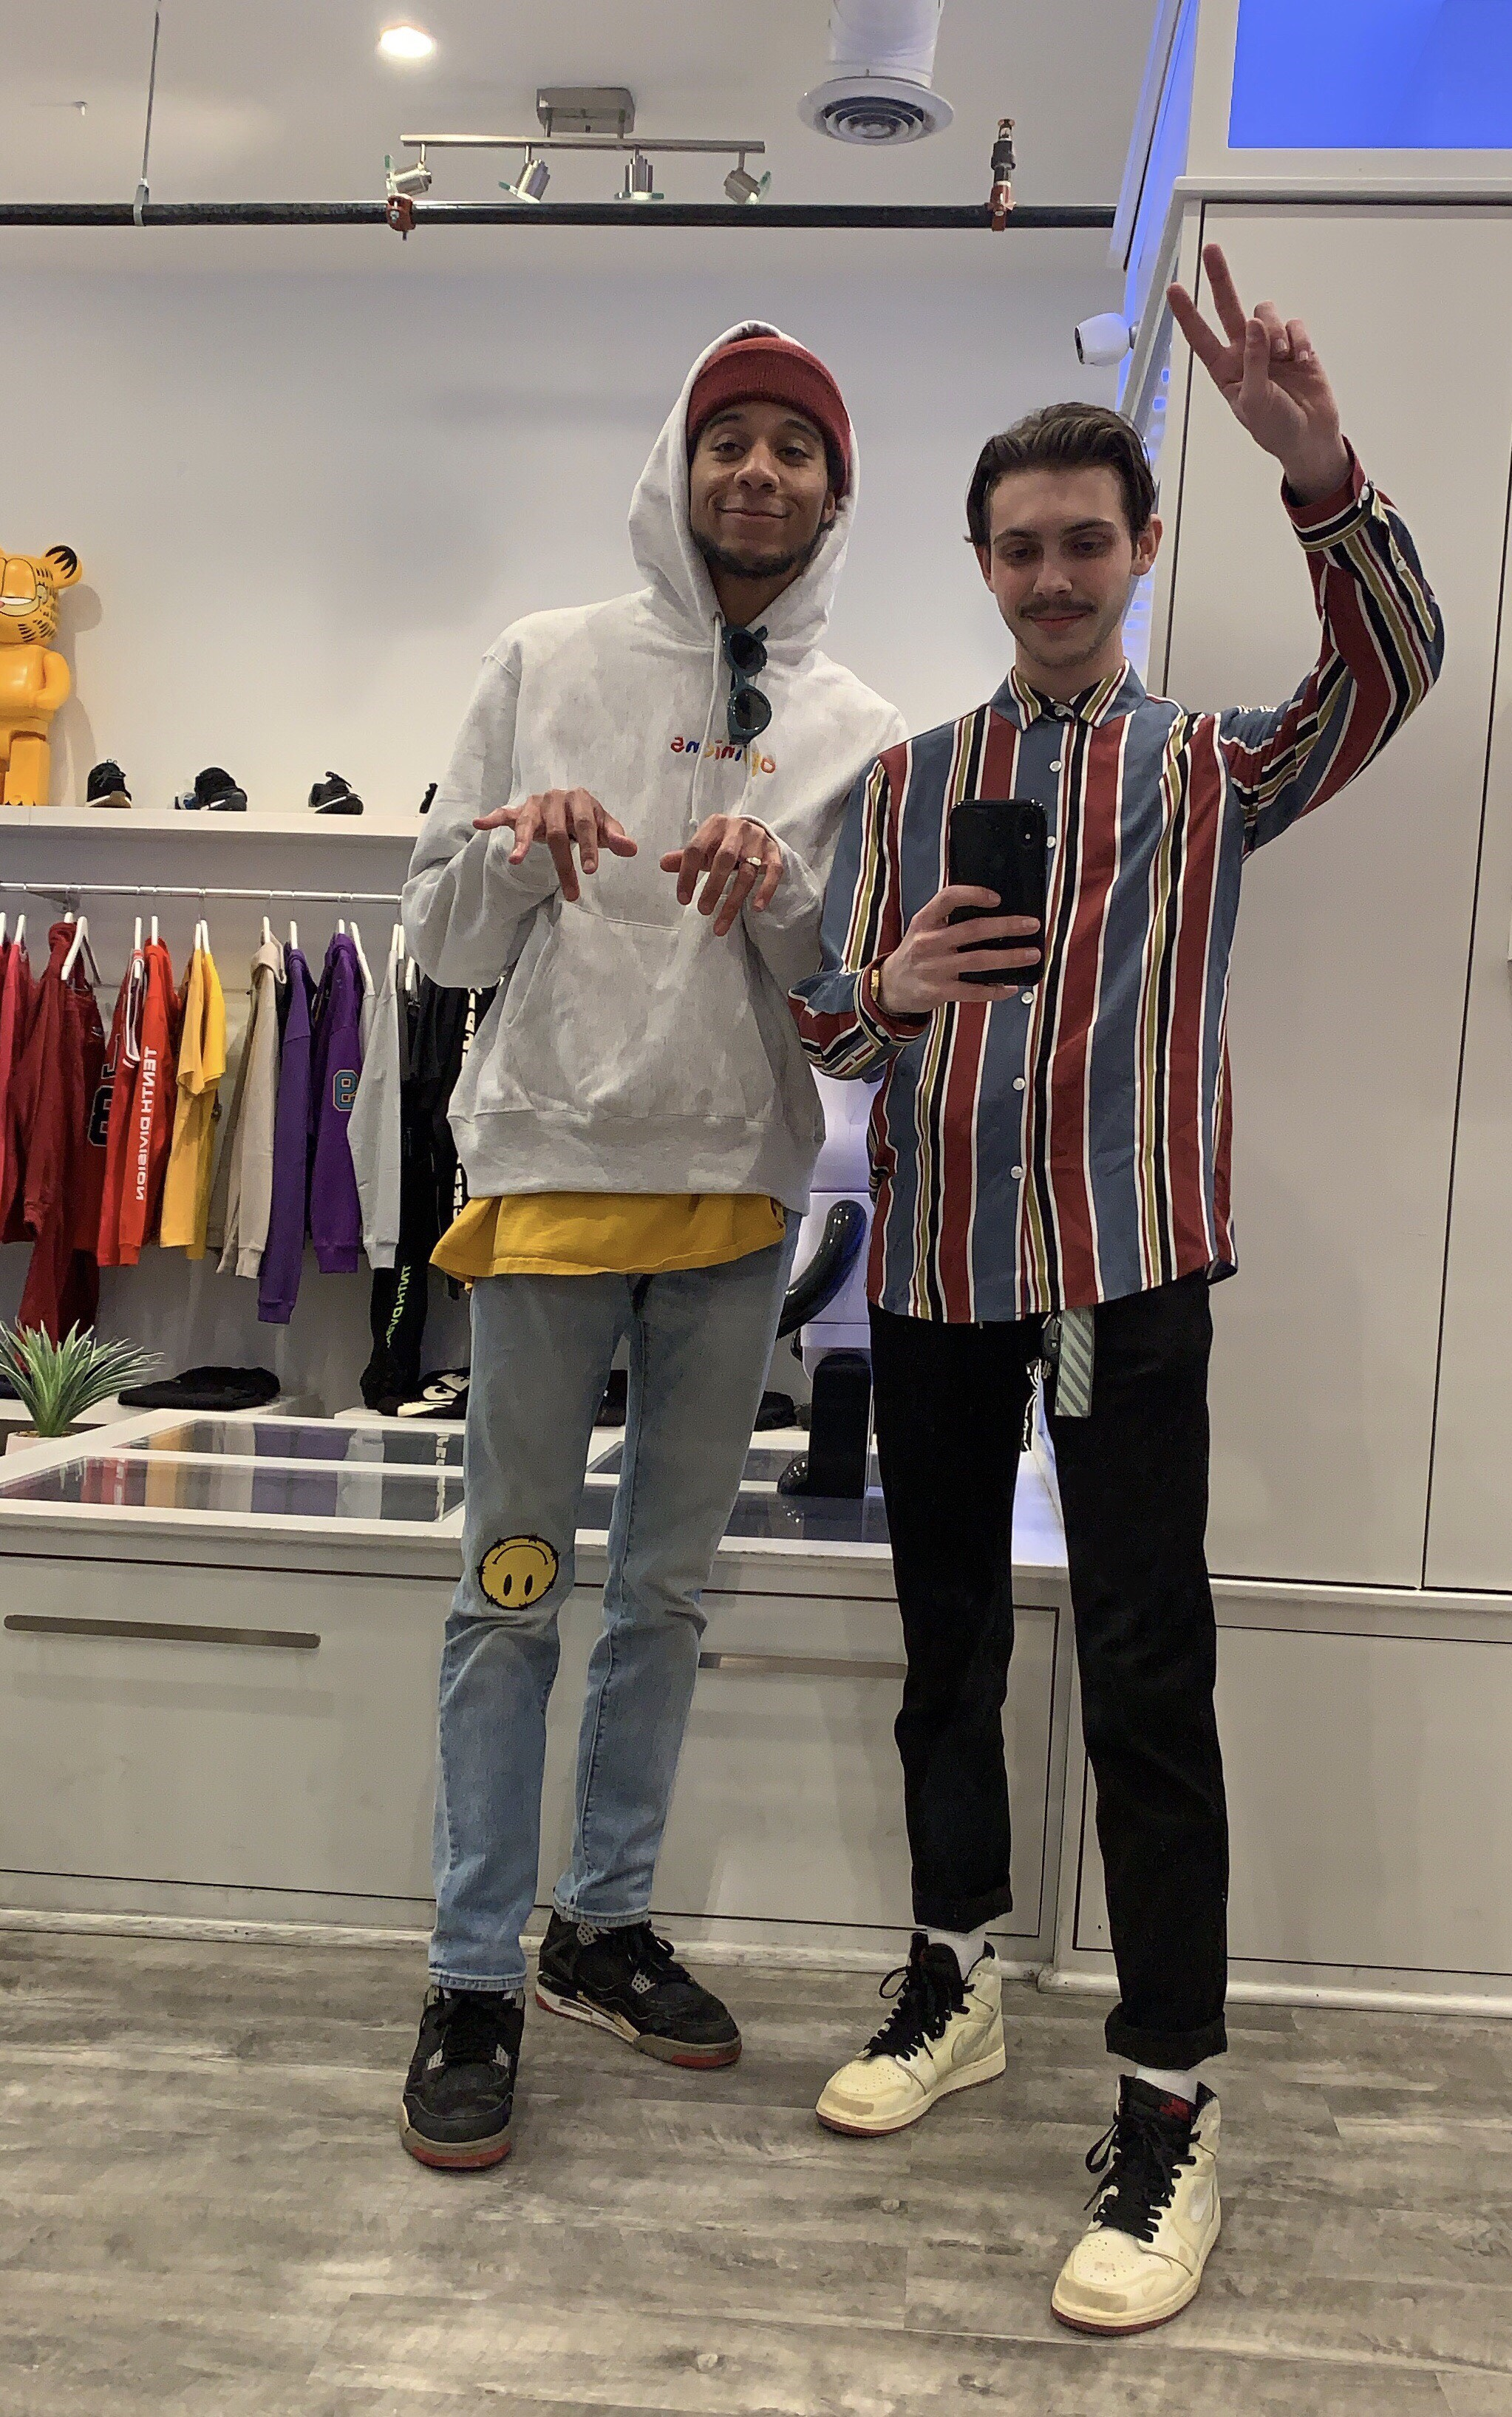 Alex Young (left) and Tyler Calpin (right) in front of the infamous fit pic mirror at Social Status. | photograph by Tyler Calpin